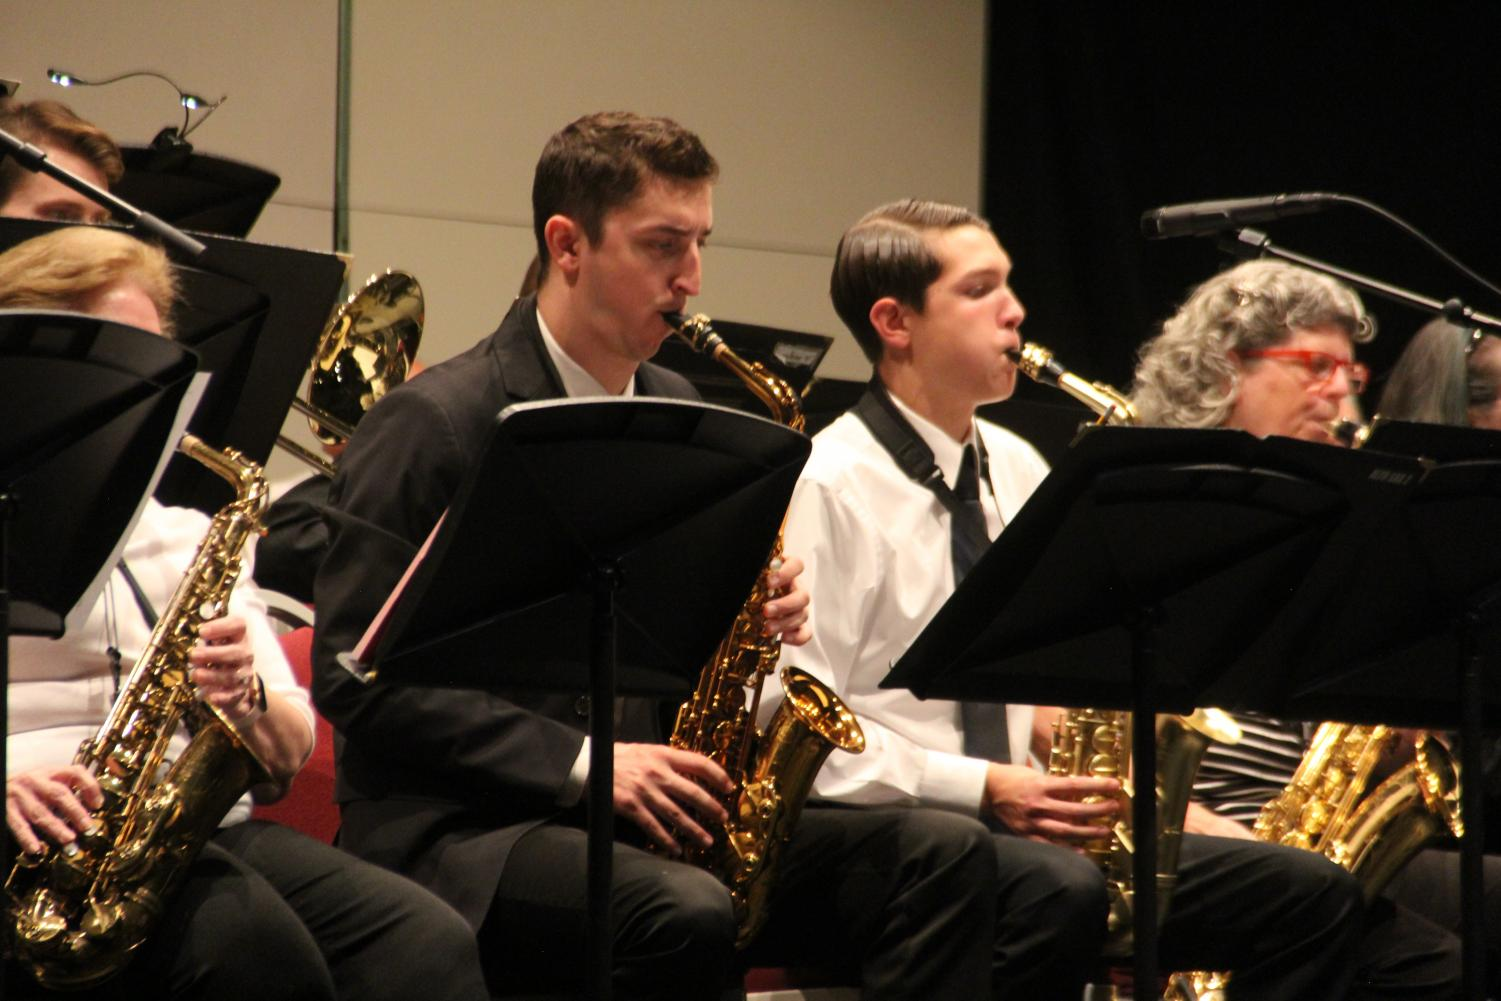 Jazz band members perform at their concert on October 8, 2019